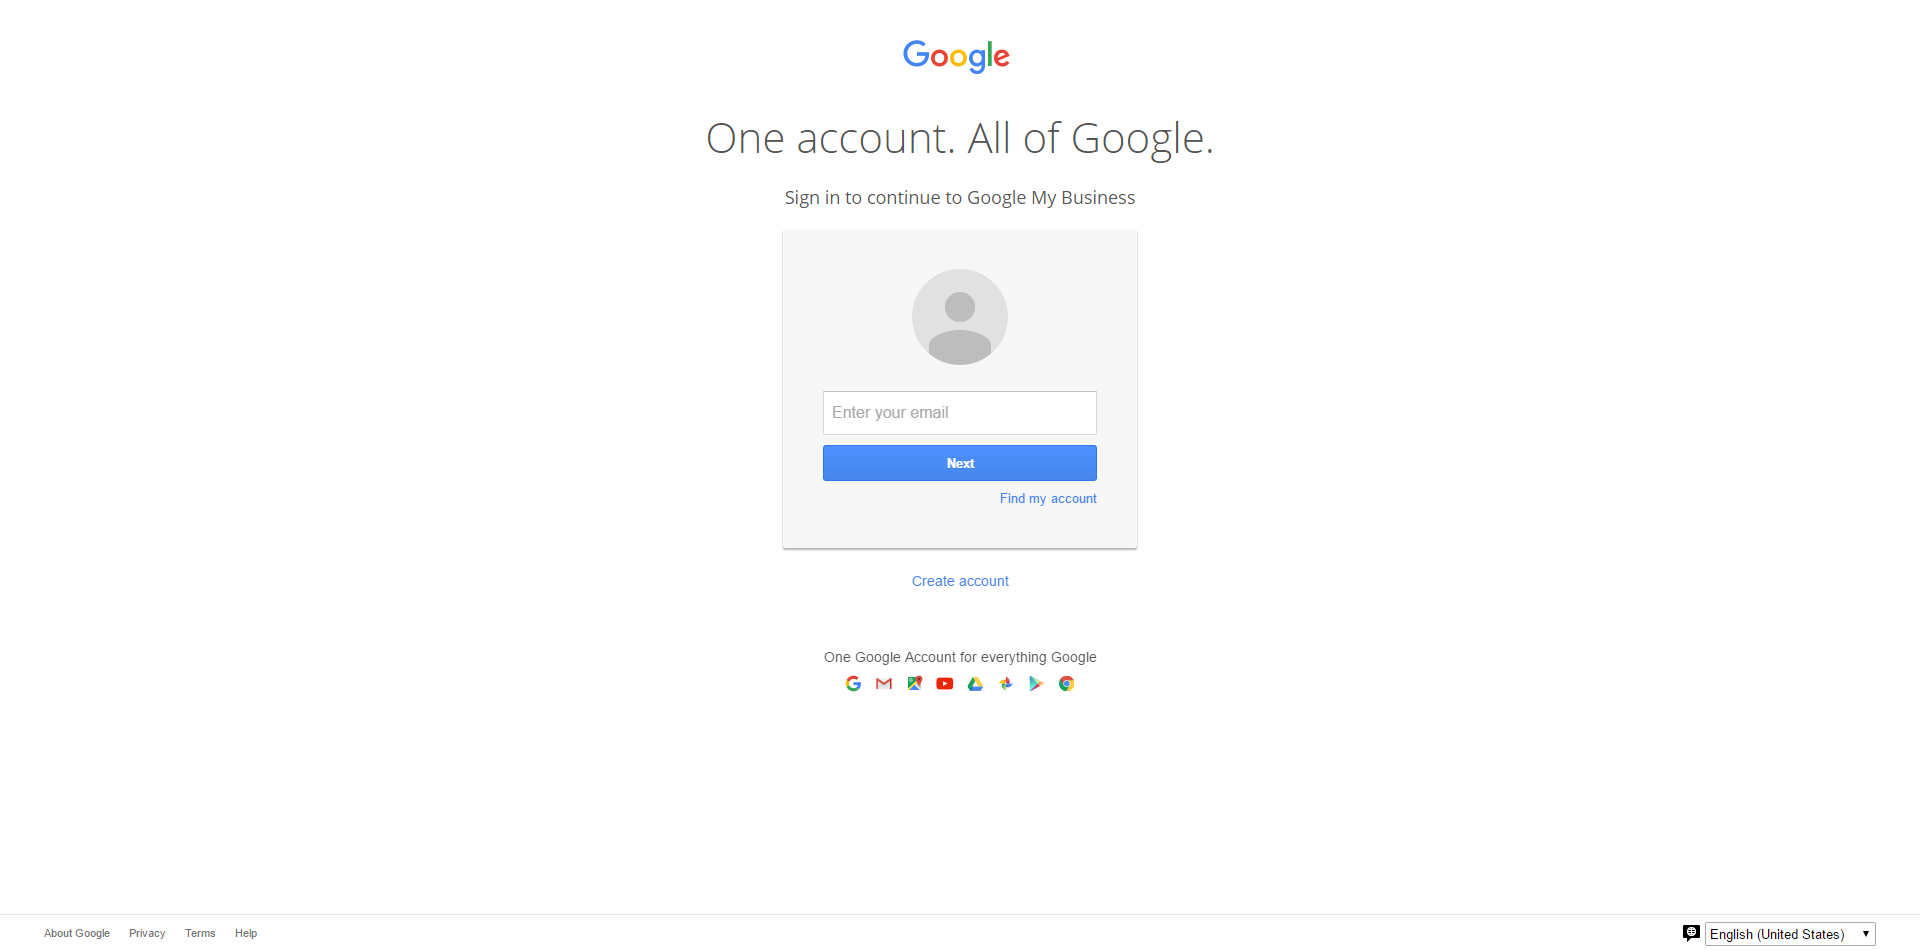 sign in with your Google Account, or create one